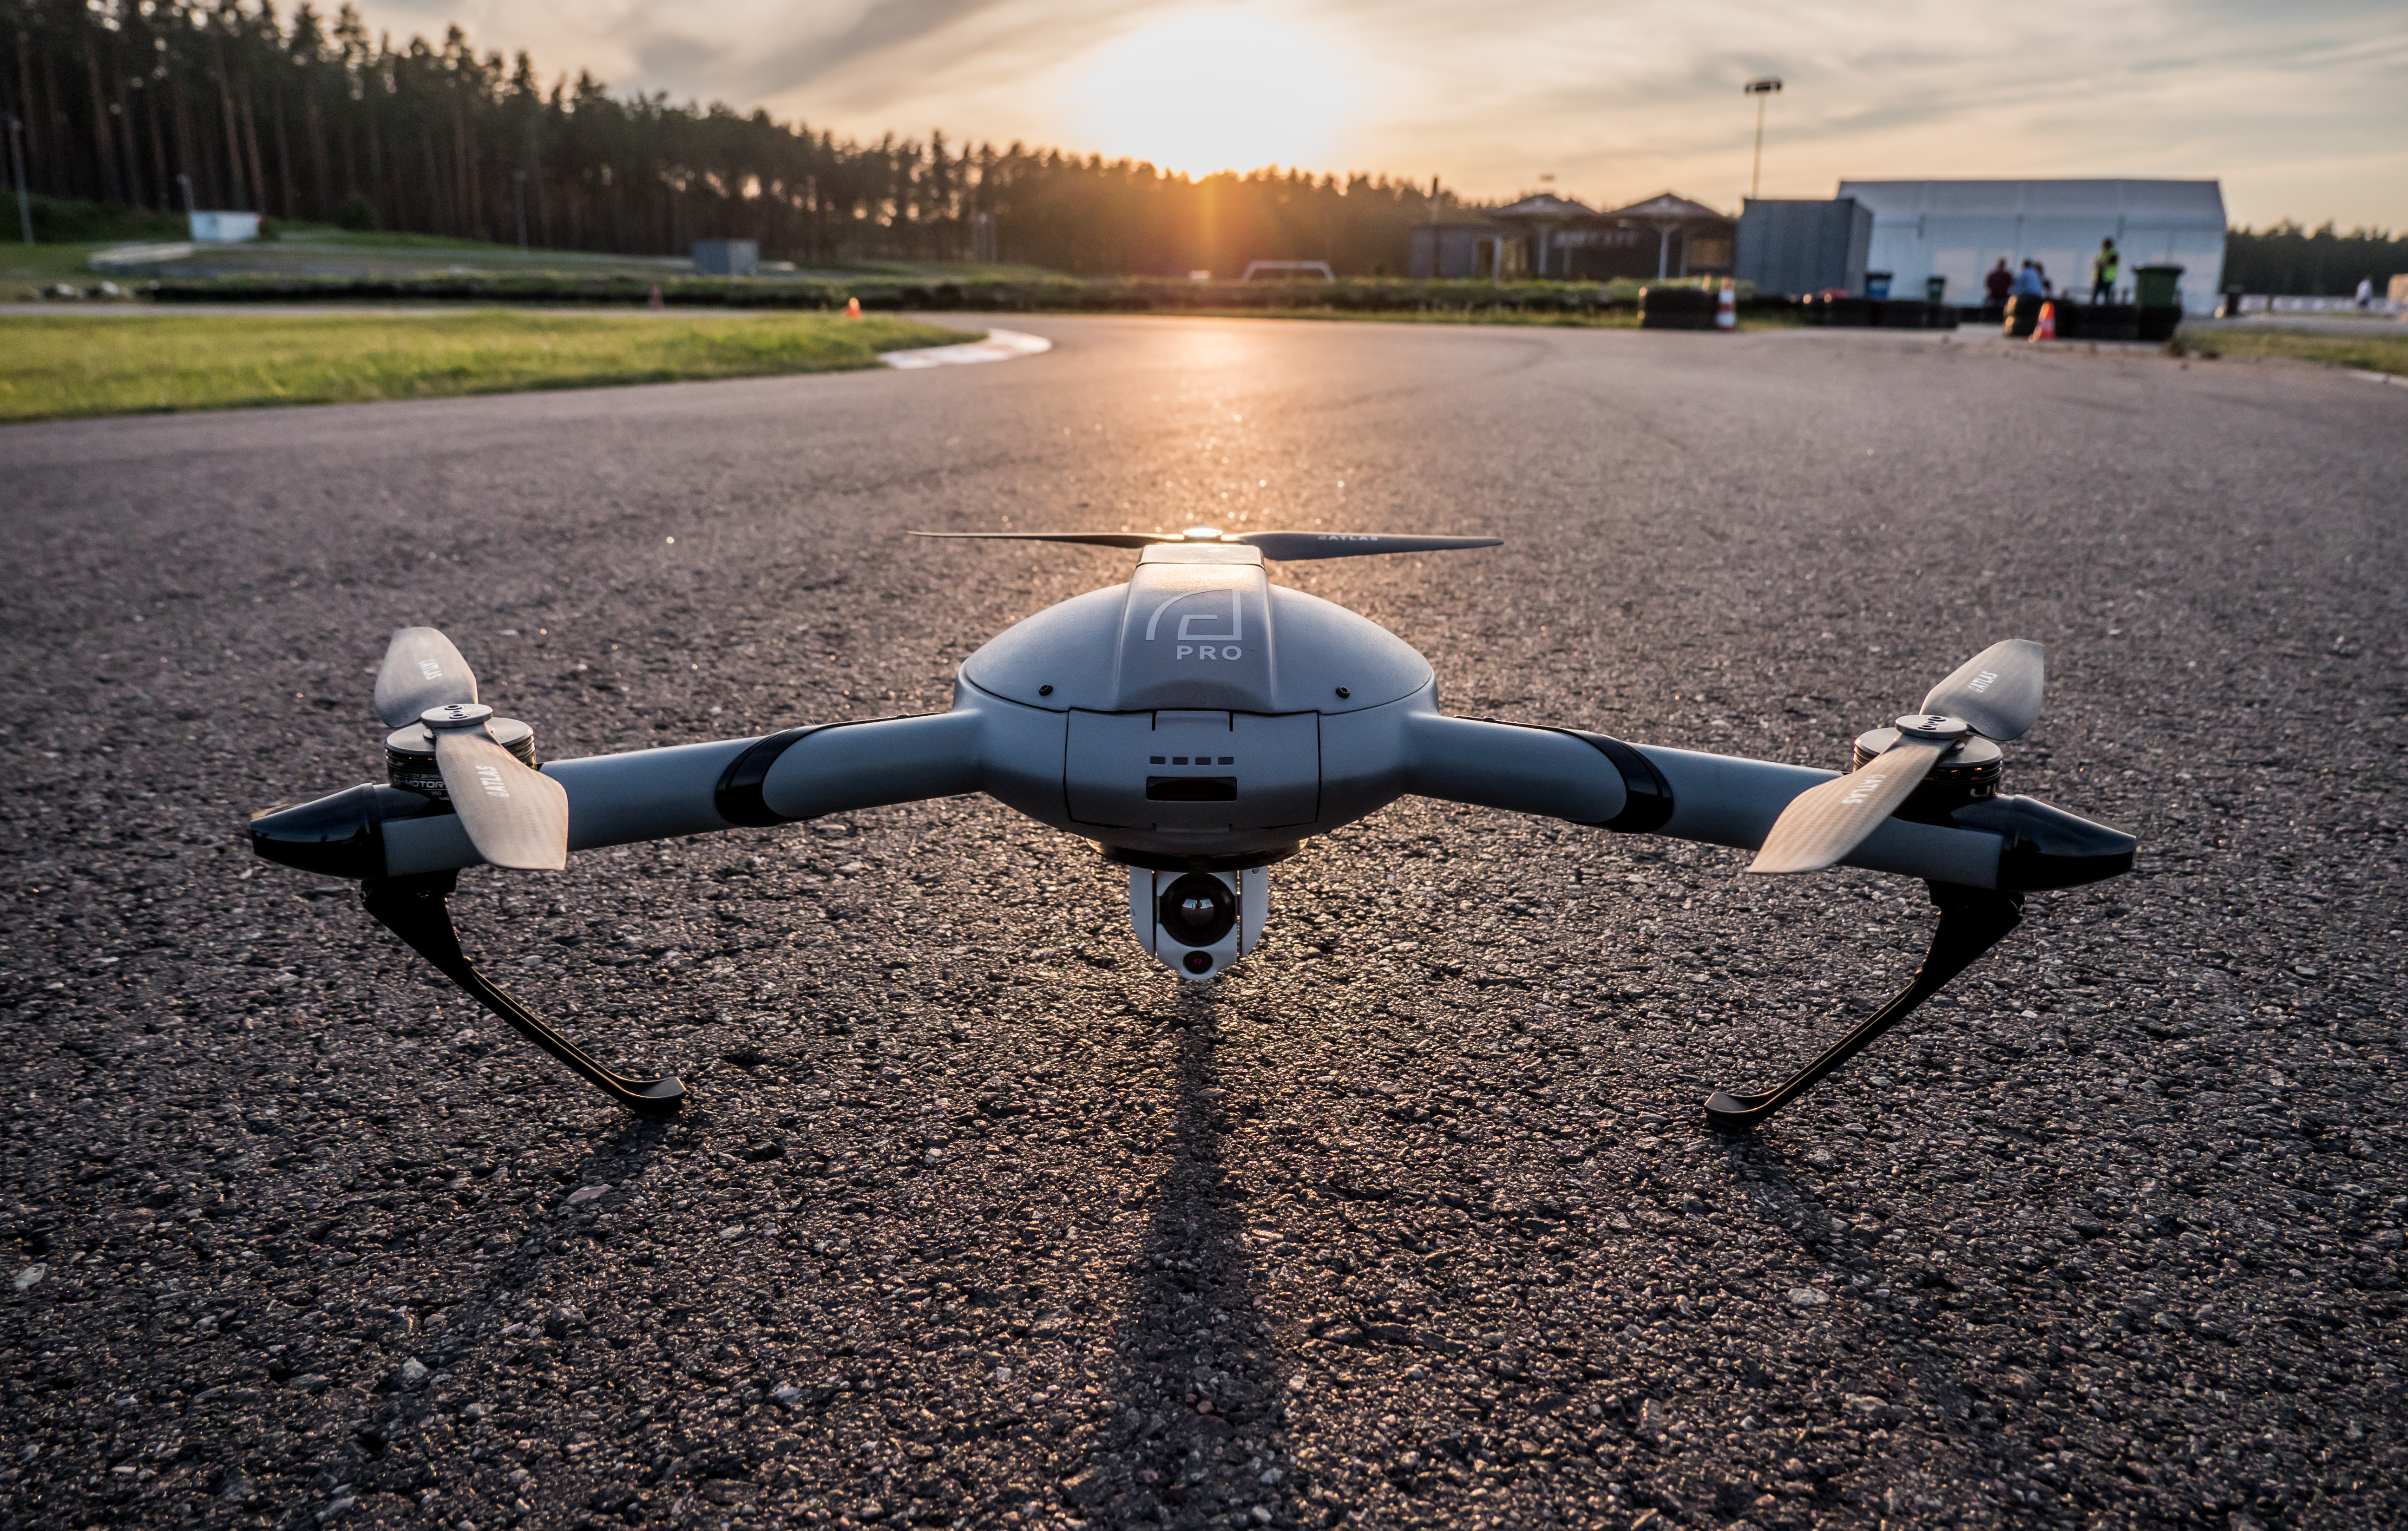 Camera drones like Mavic, Spark will generate just 13% of all drone revenue, report says